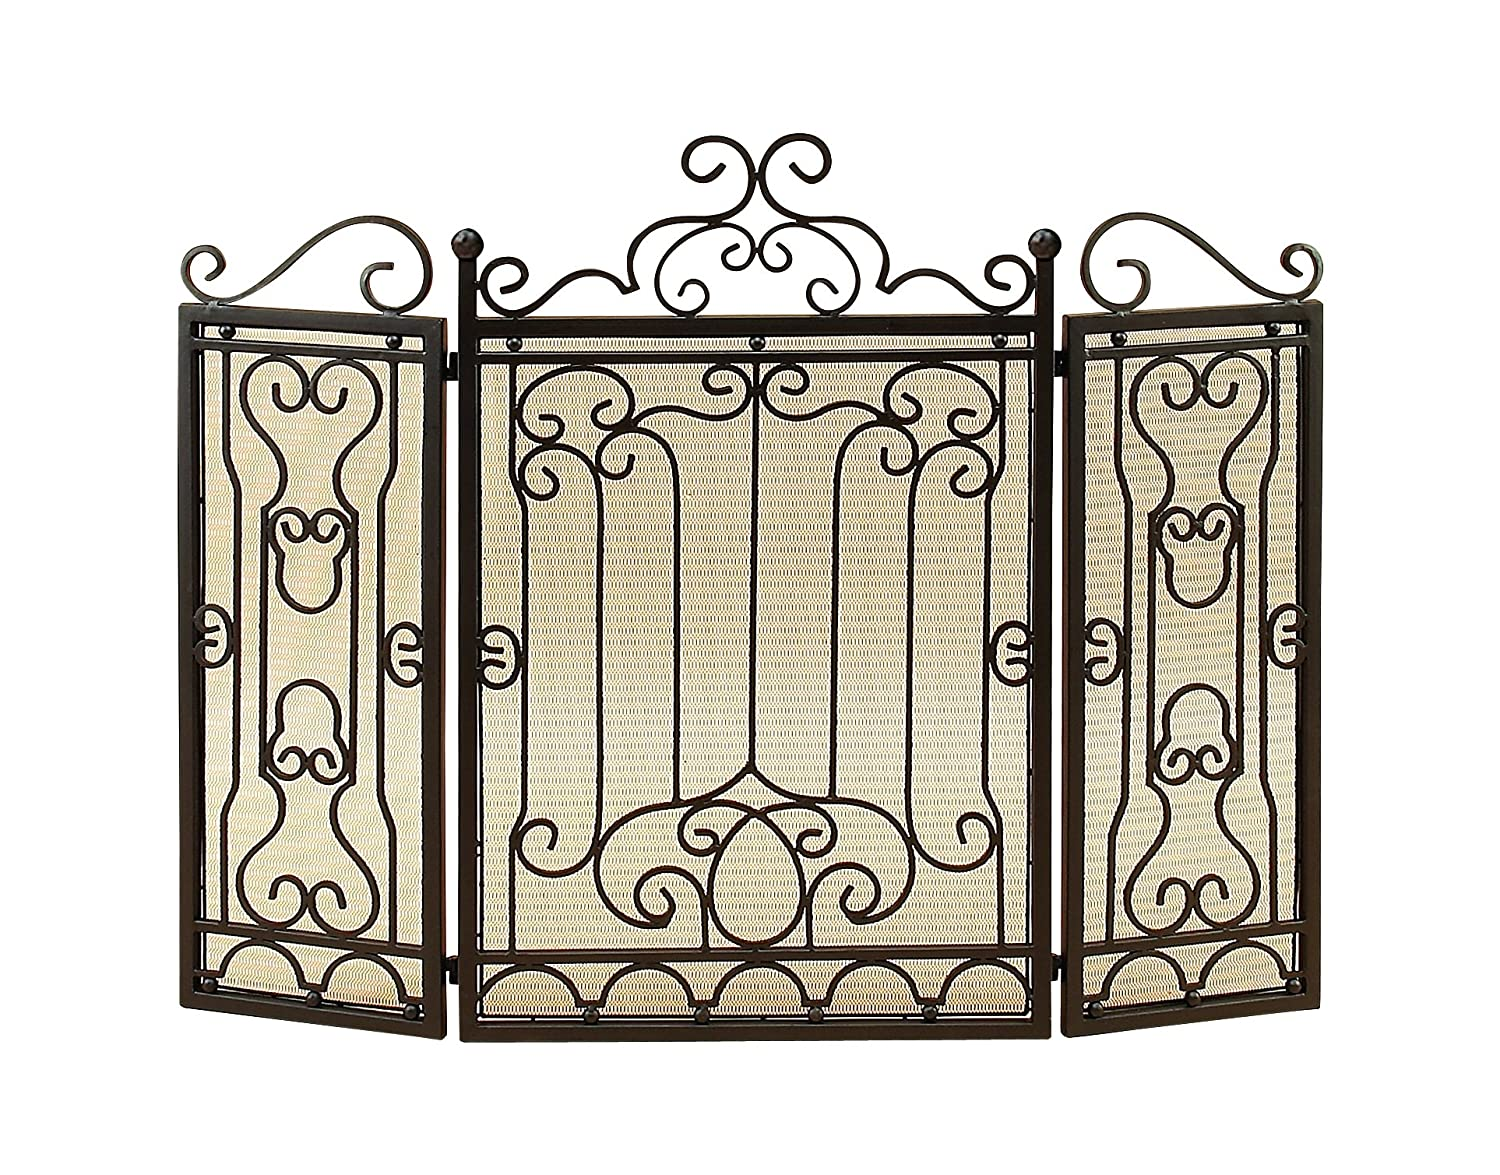 Deco 79 90569 Metal Fire Screen for Complete Safety at Fire Place Benzara